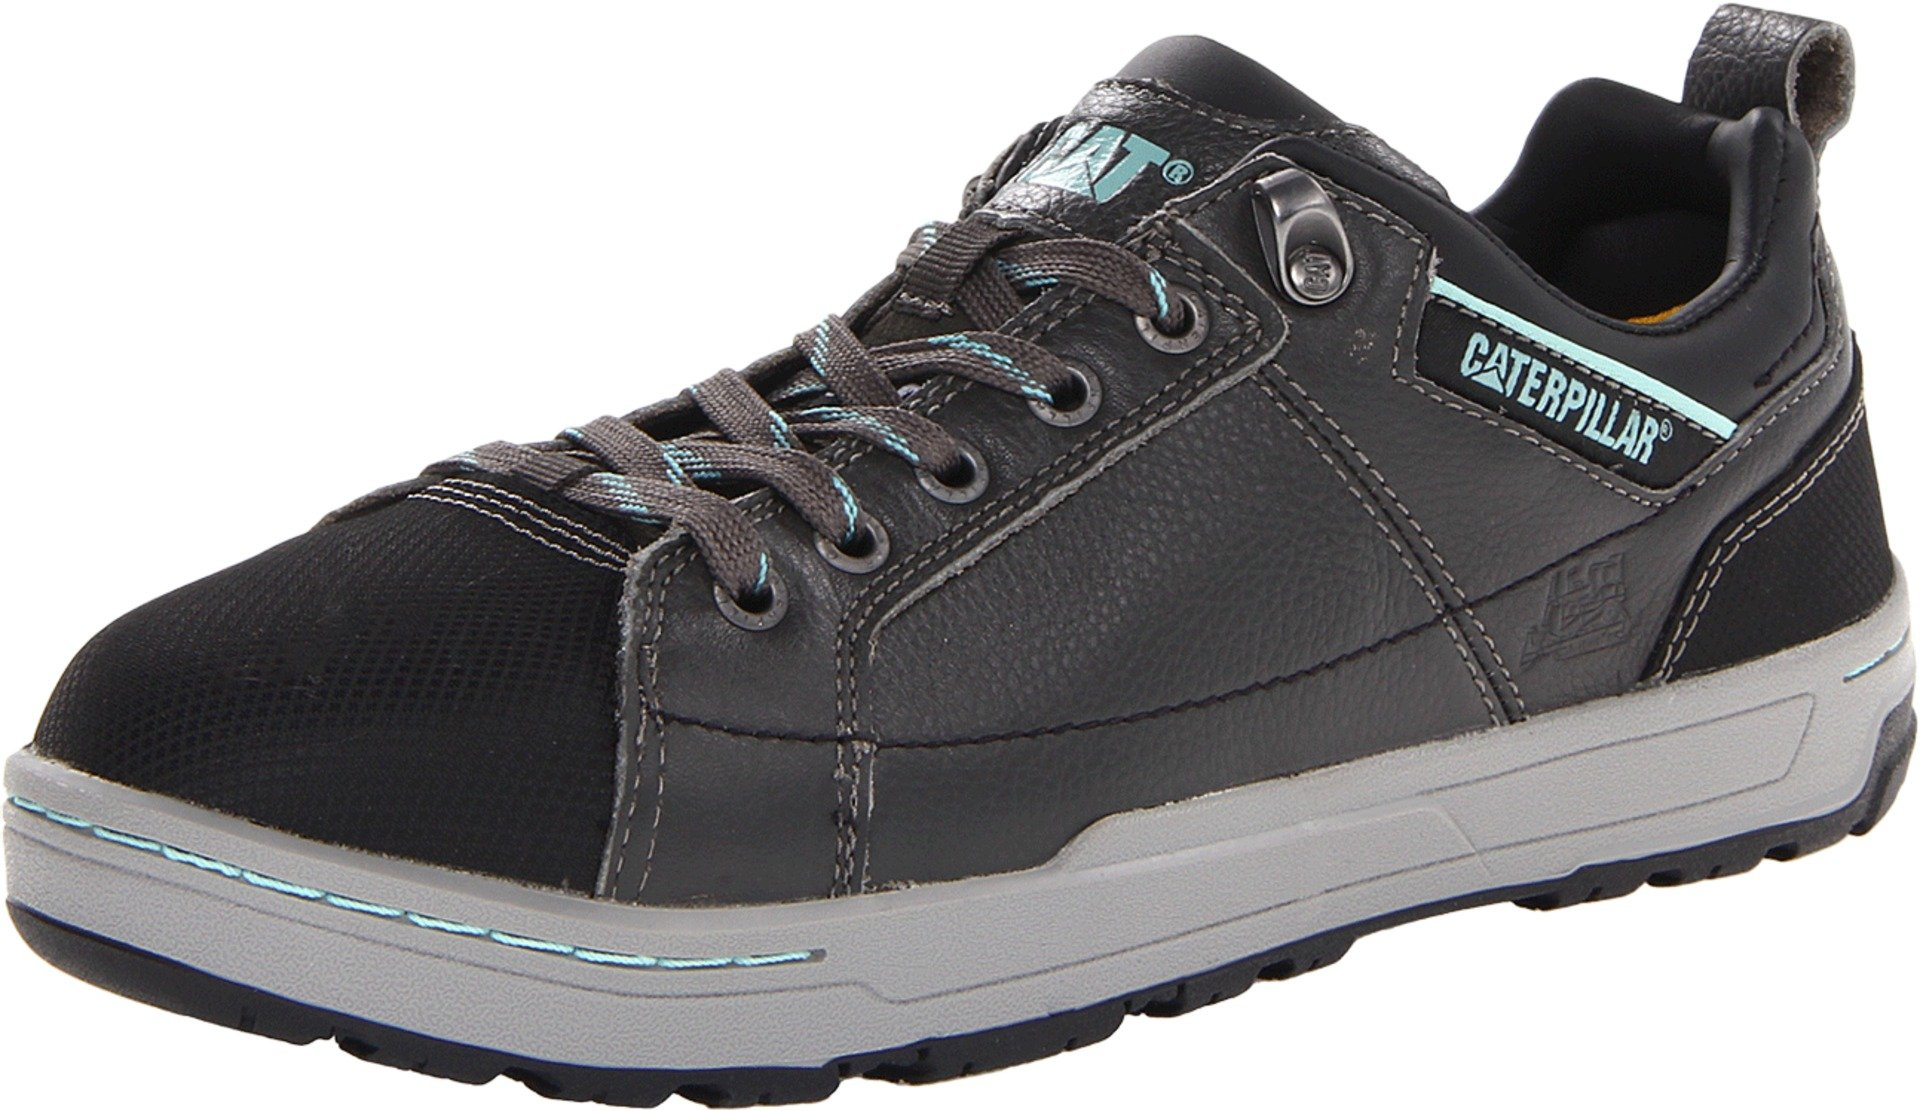 Caterpillar Women's Brode ST Work Shoe